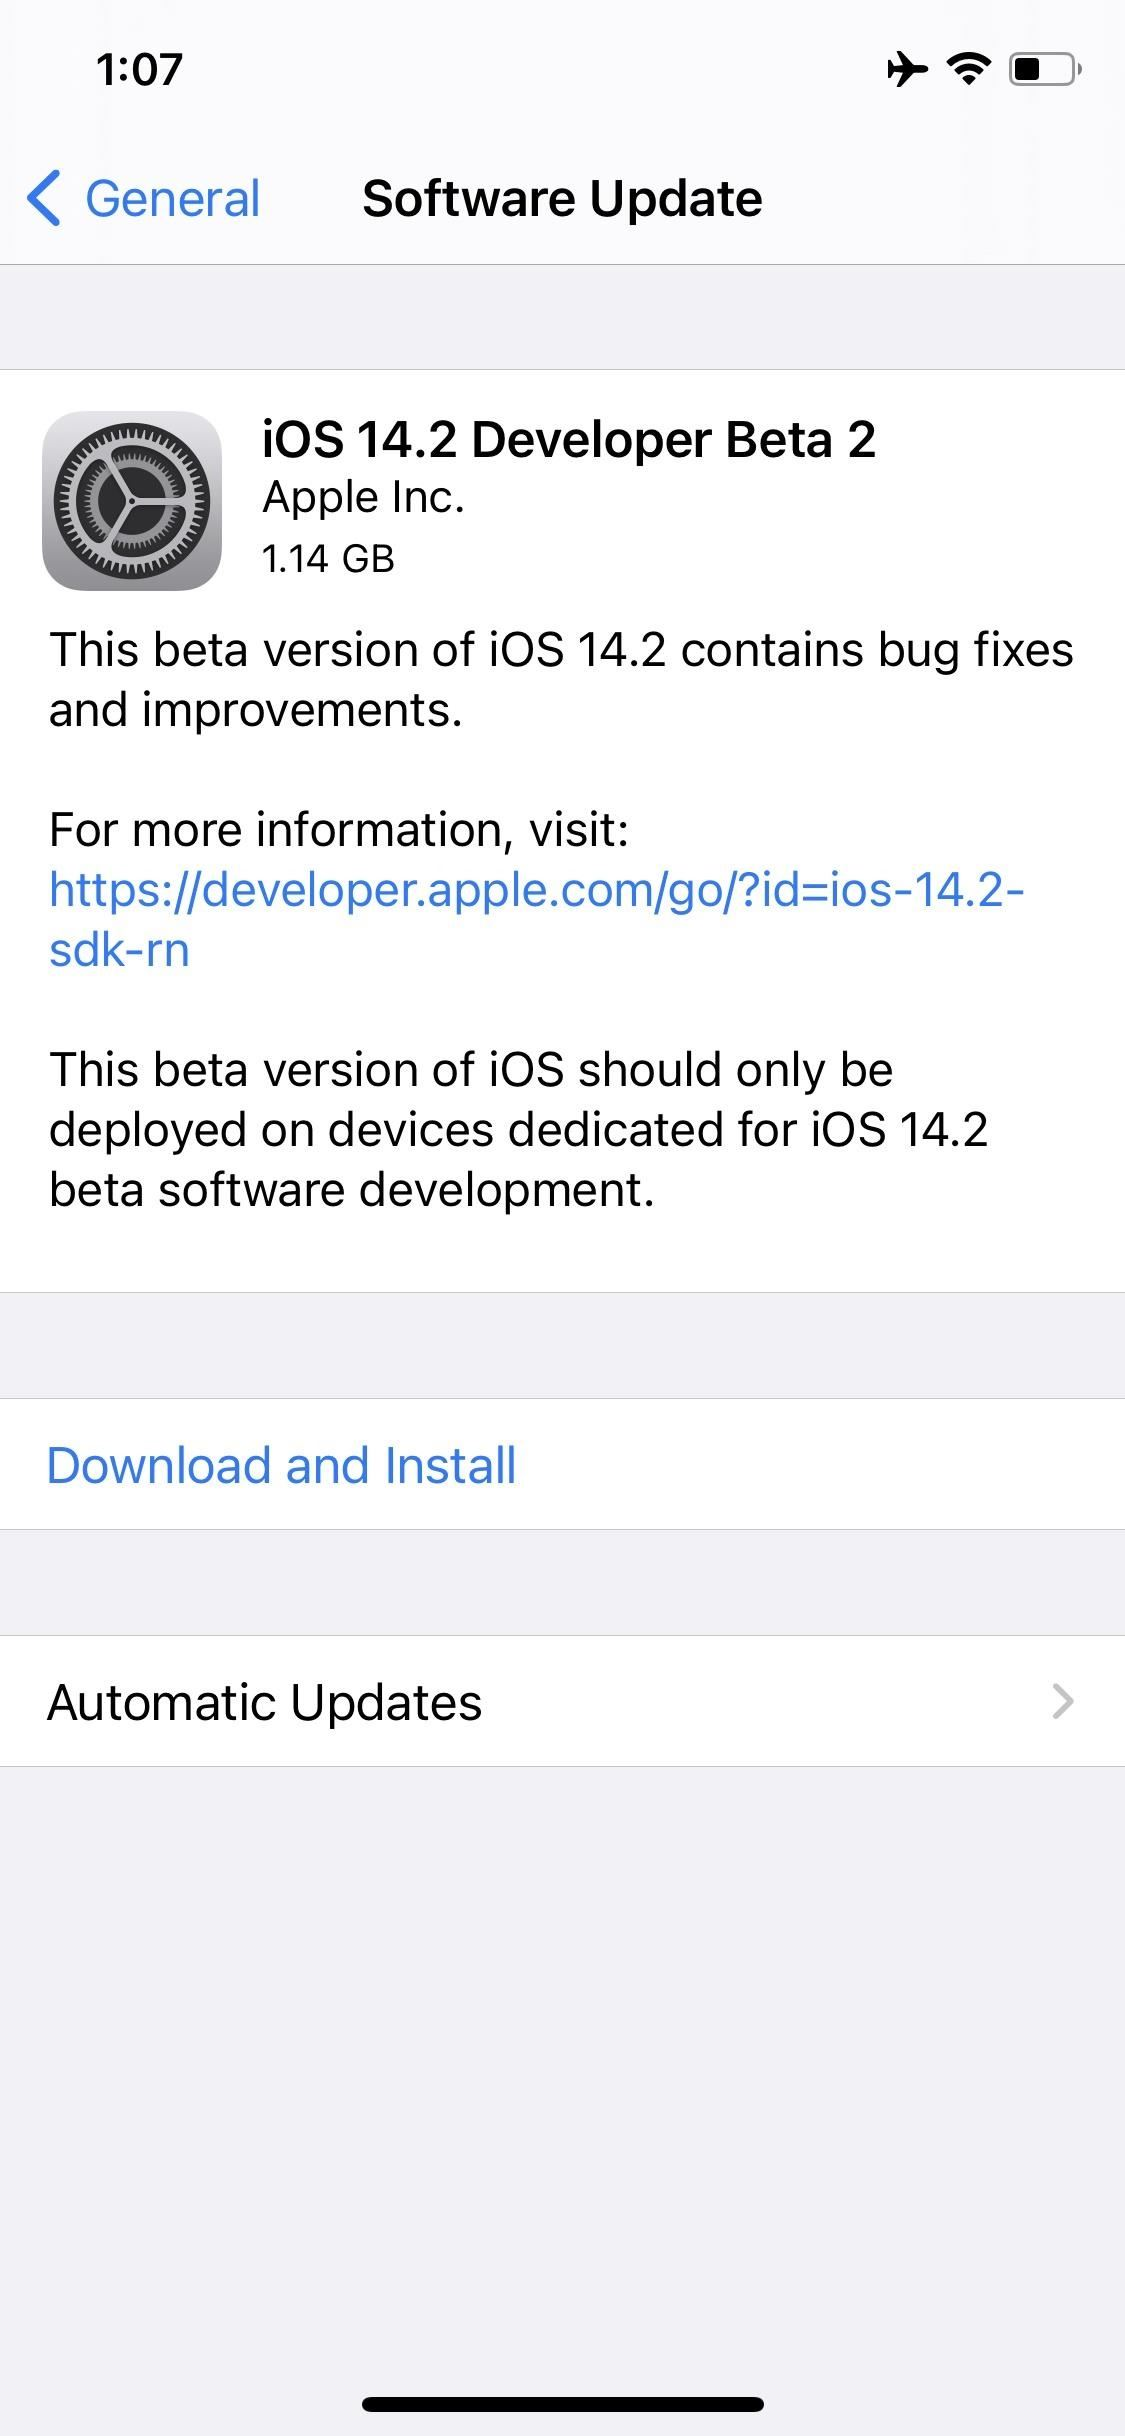 Apple Releases iOS 14.2 Developer Beta 2 for iPhone